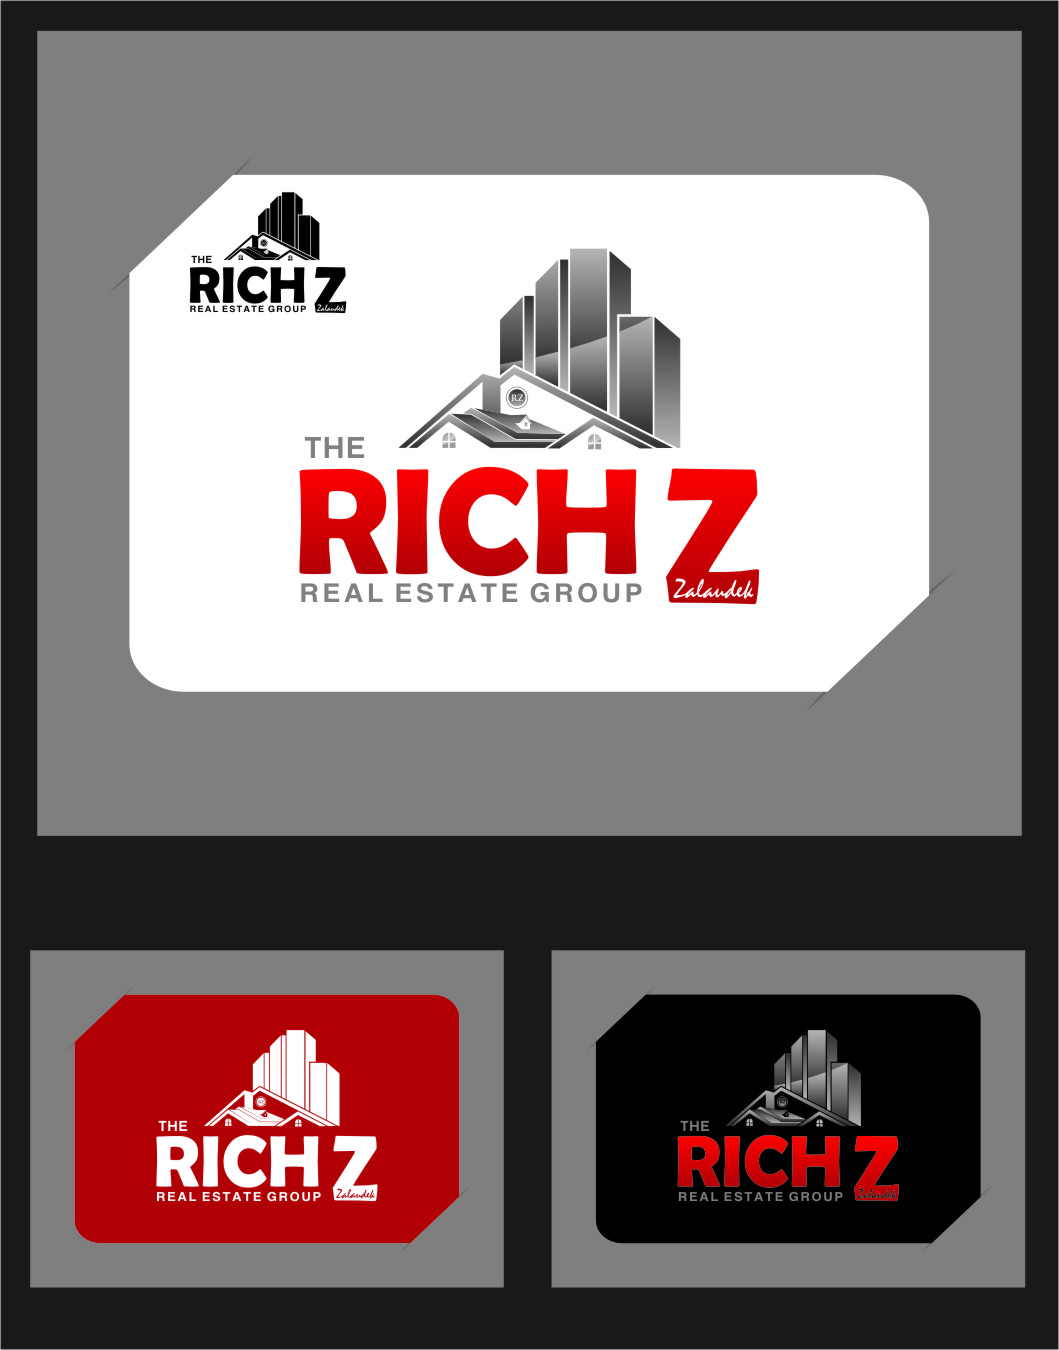 Logo Design by RasYa Muhammad Athaya - Entry No. 231 in the Logo Design Contest The Rich Z. Real Estate Group Logo Design.